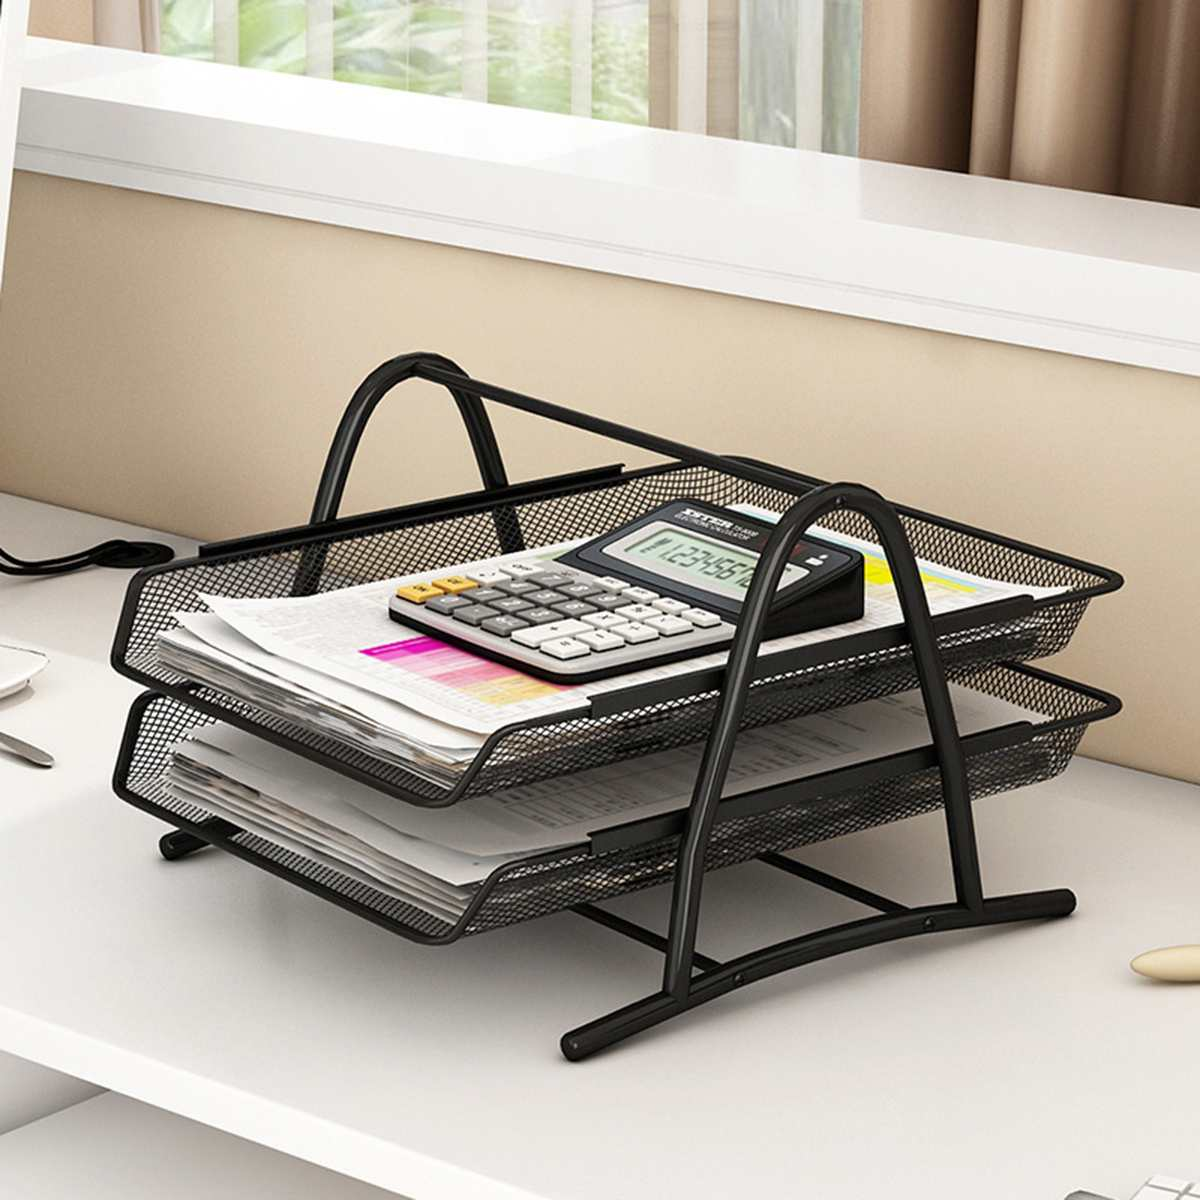 Stackable Document Organizer A4 Paper File Letter Book Tray Magazine Notebook Organizer Carrying Case Metal Iron Net 2/3/4 Tier